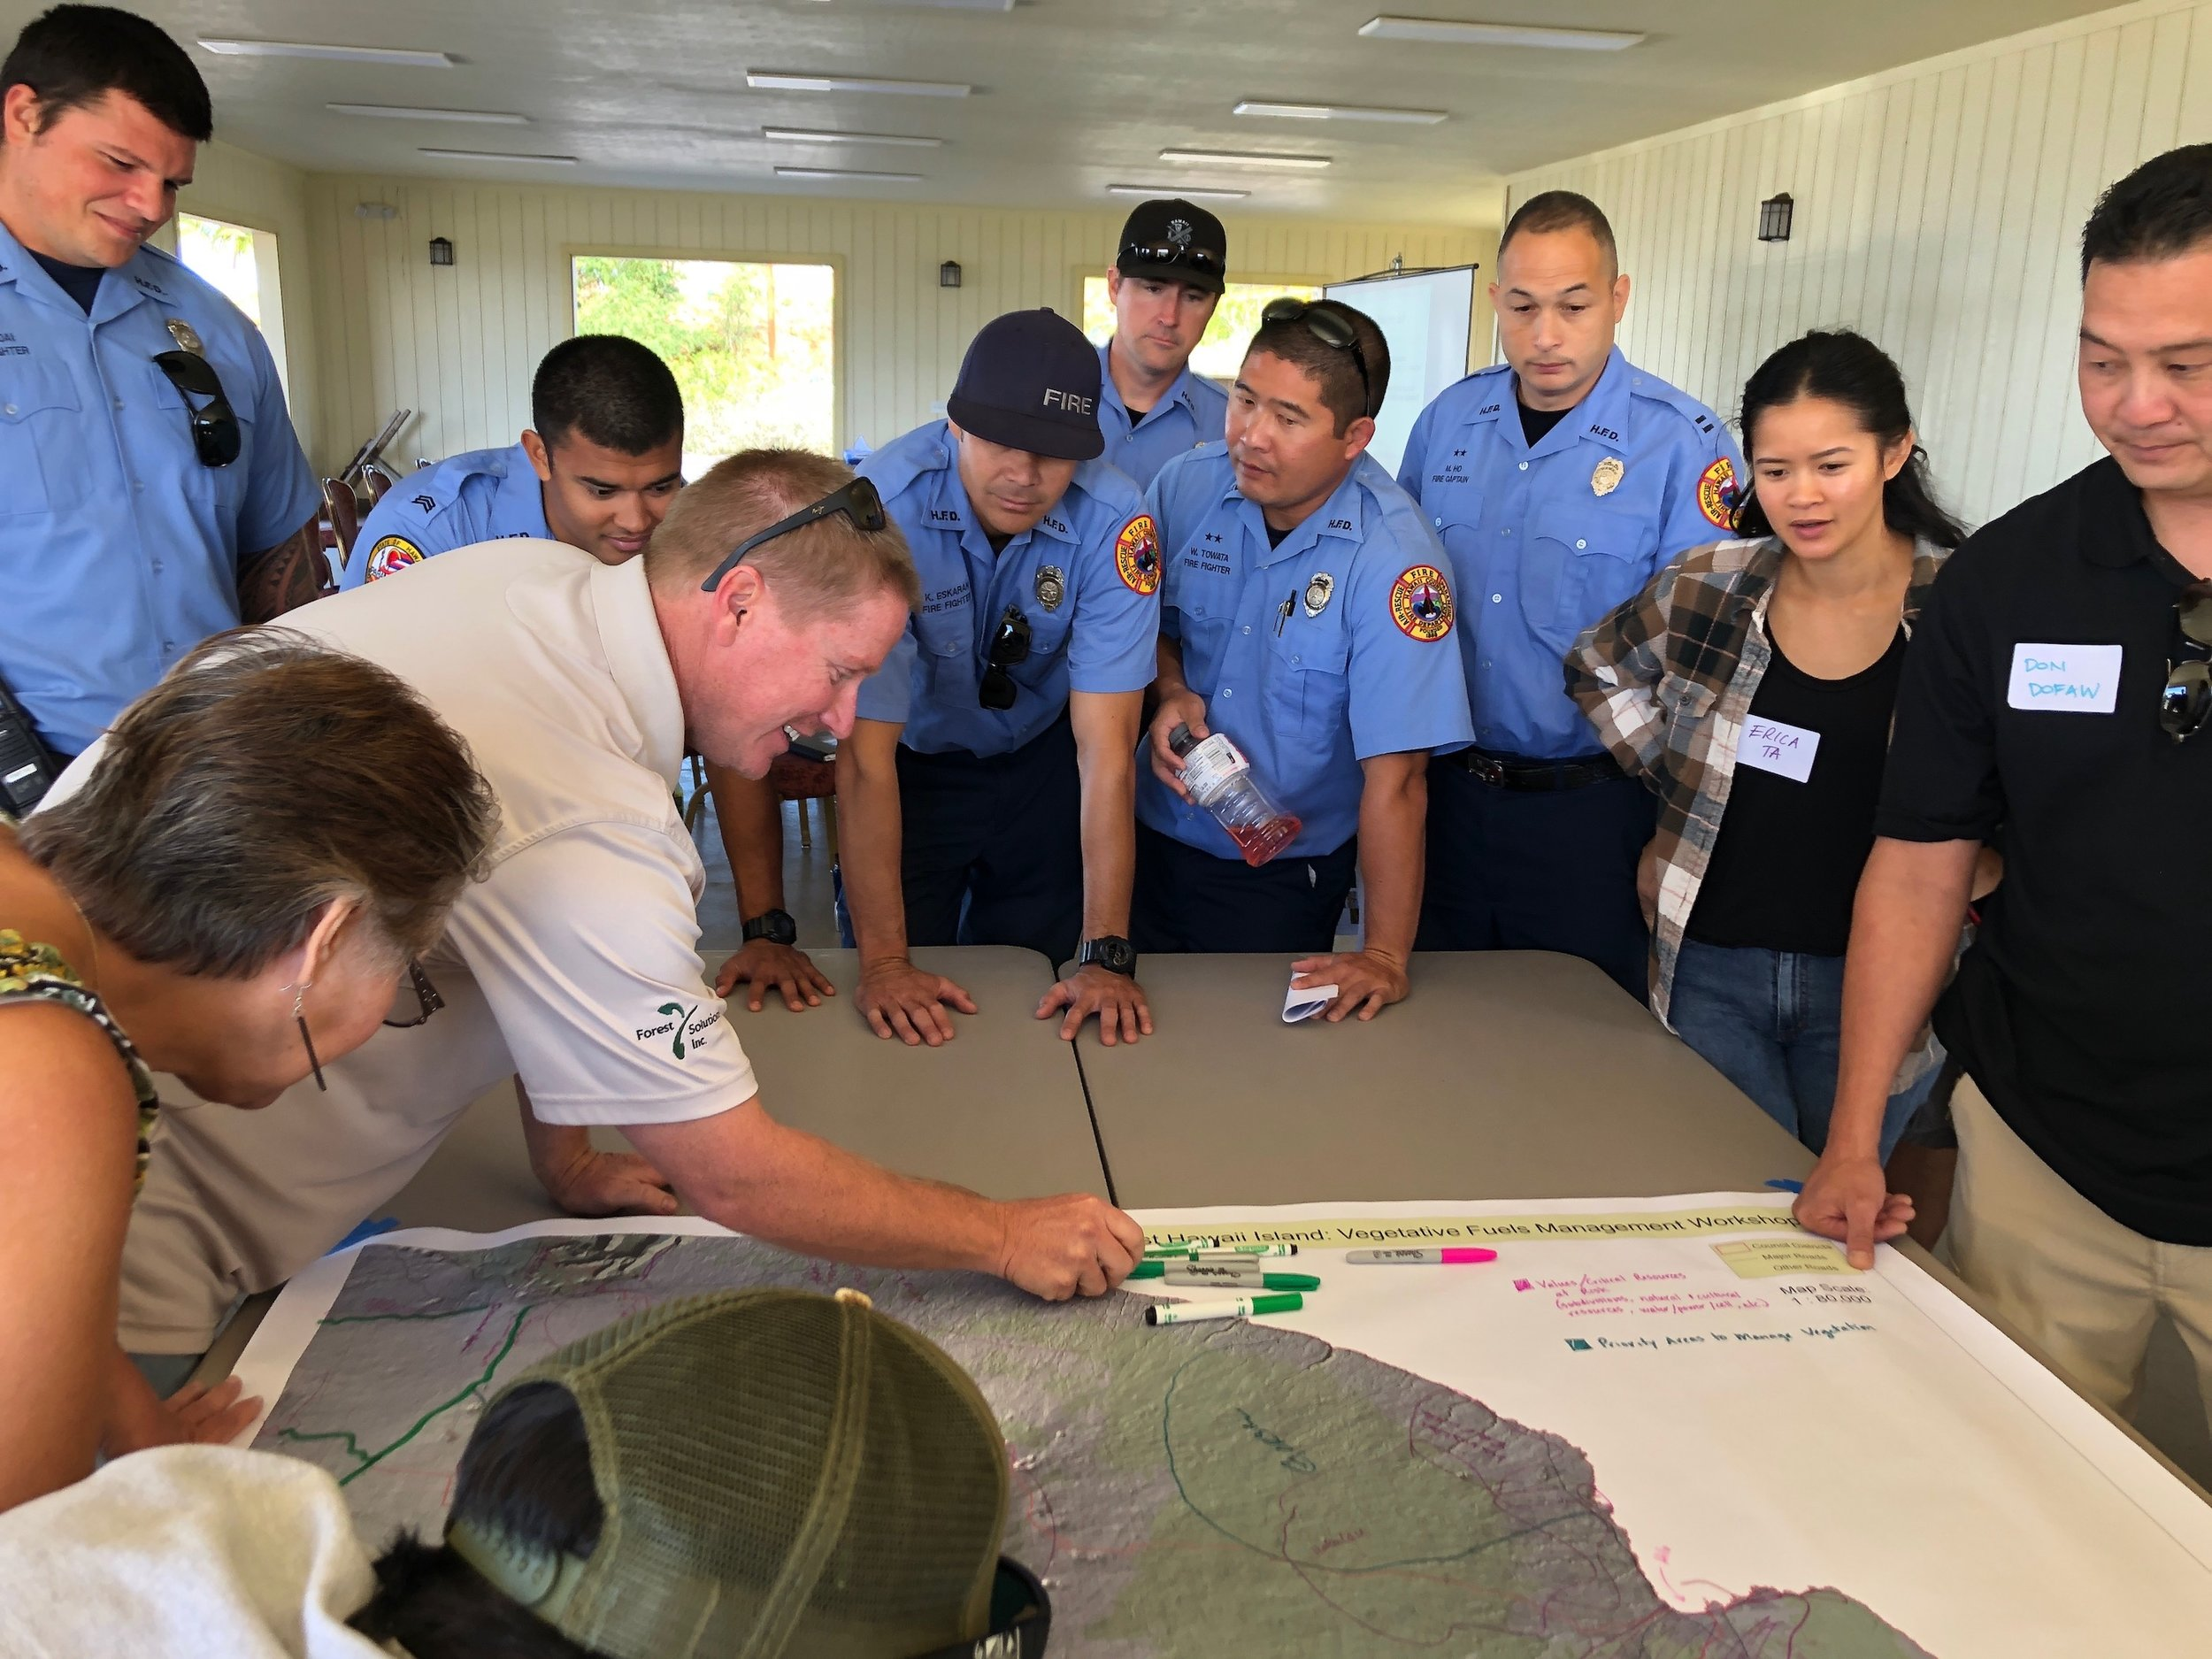 Hawaii Island Kailapa Vegetative Fuels Management Collaborative Action Planning Workshop_2_26_2019_43.jpg